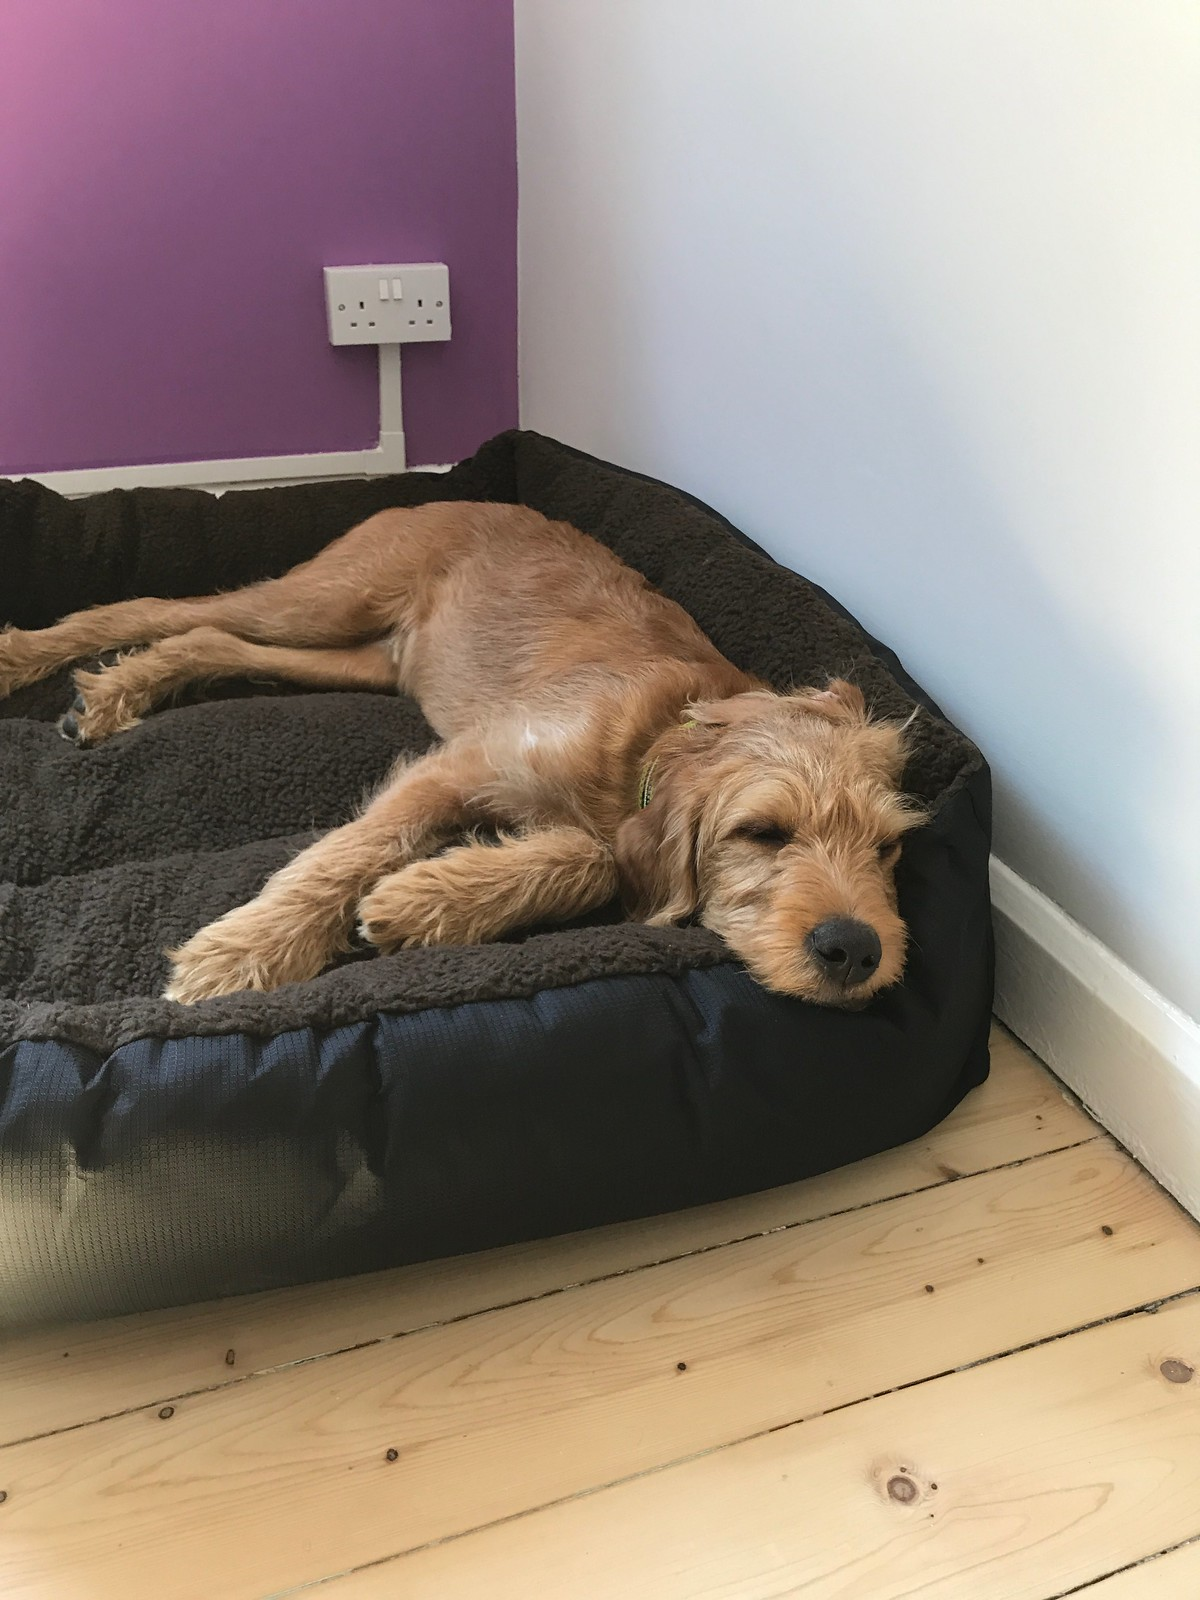 Whisky the puppy, sleeping in his new bed in the new office.